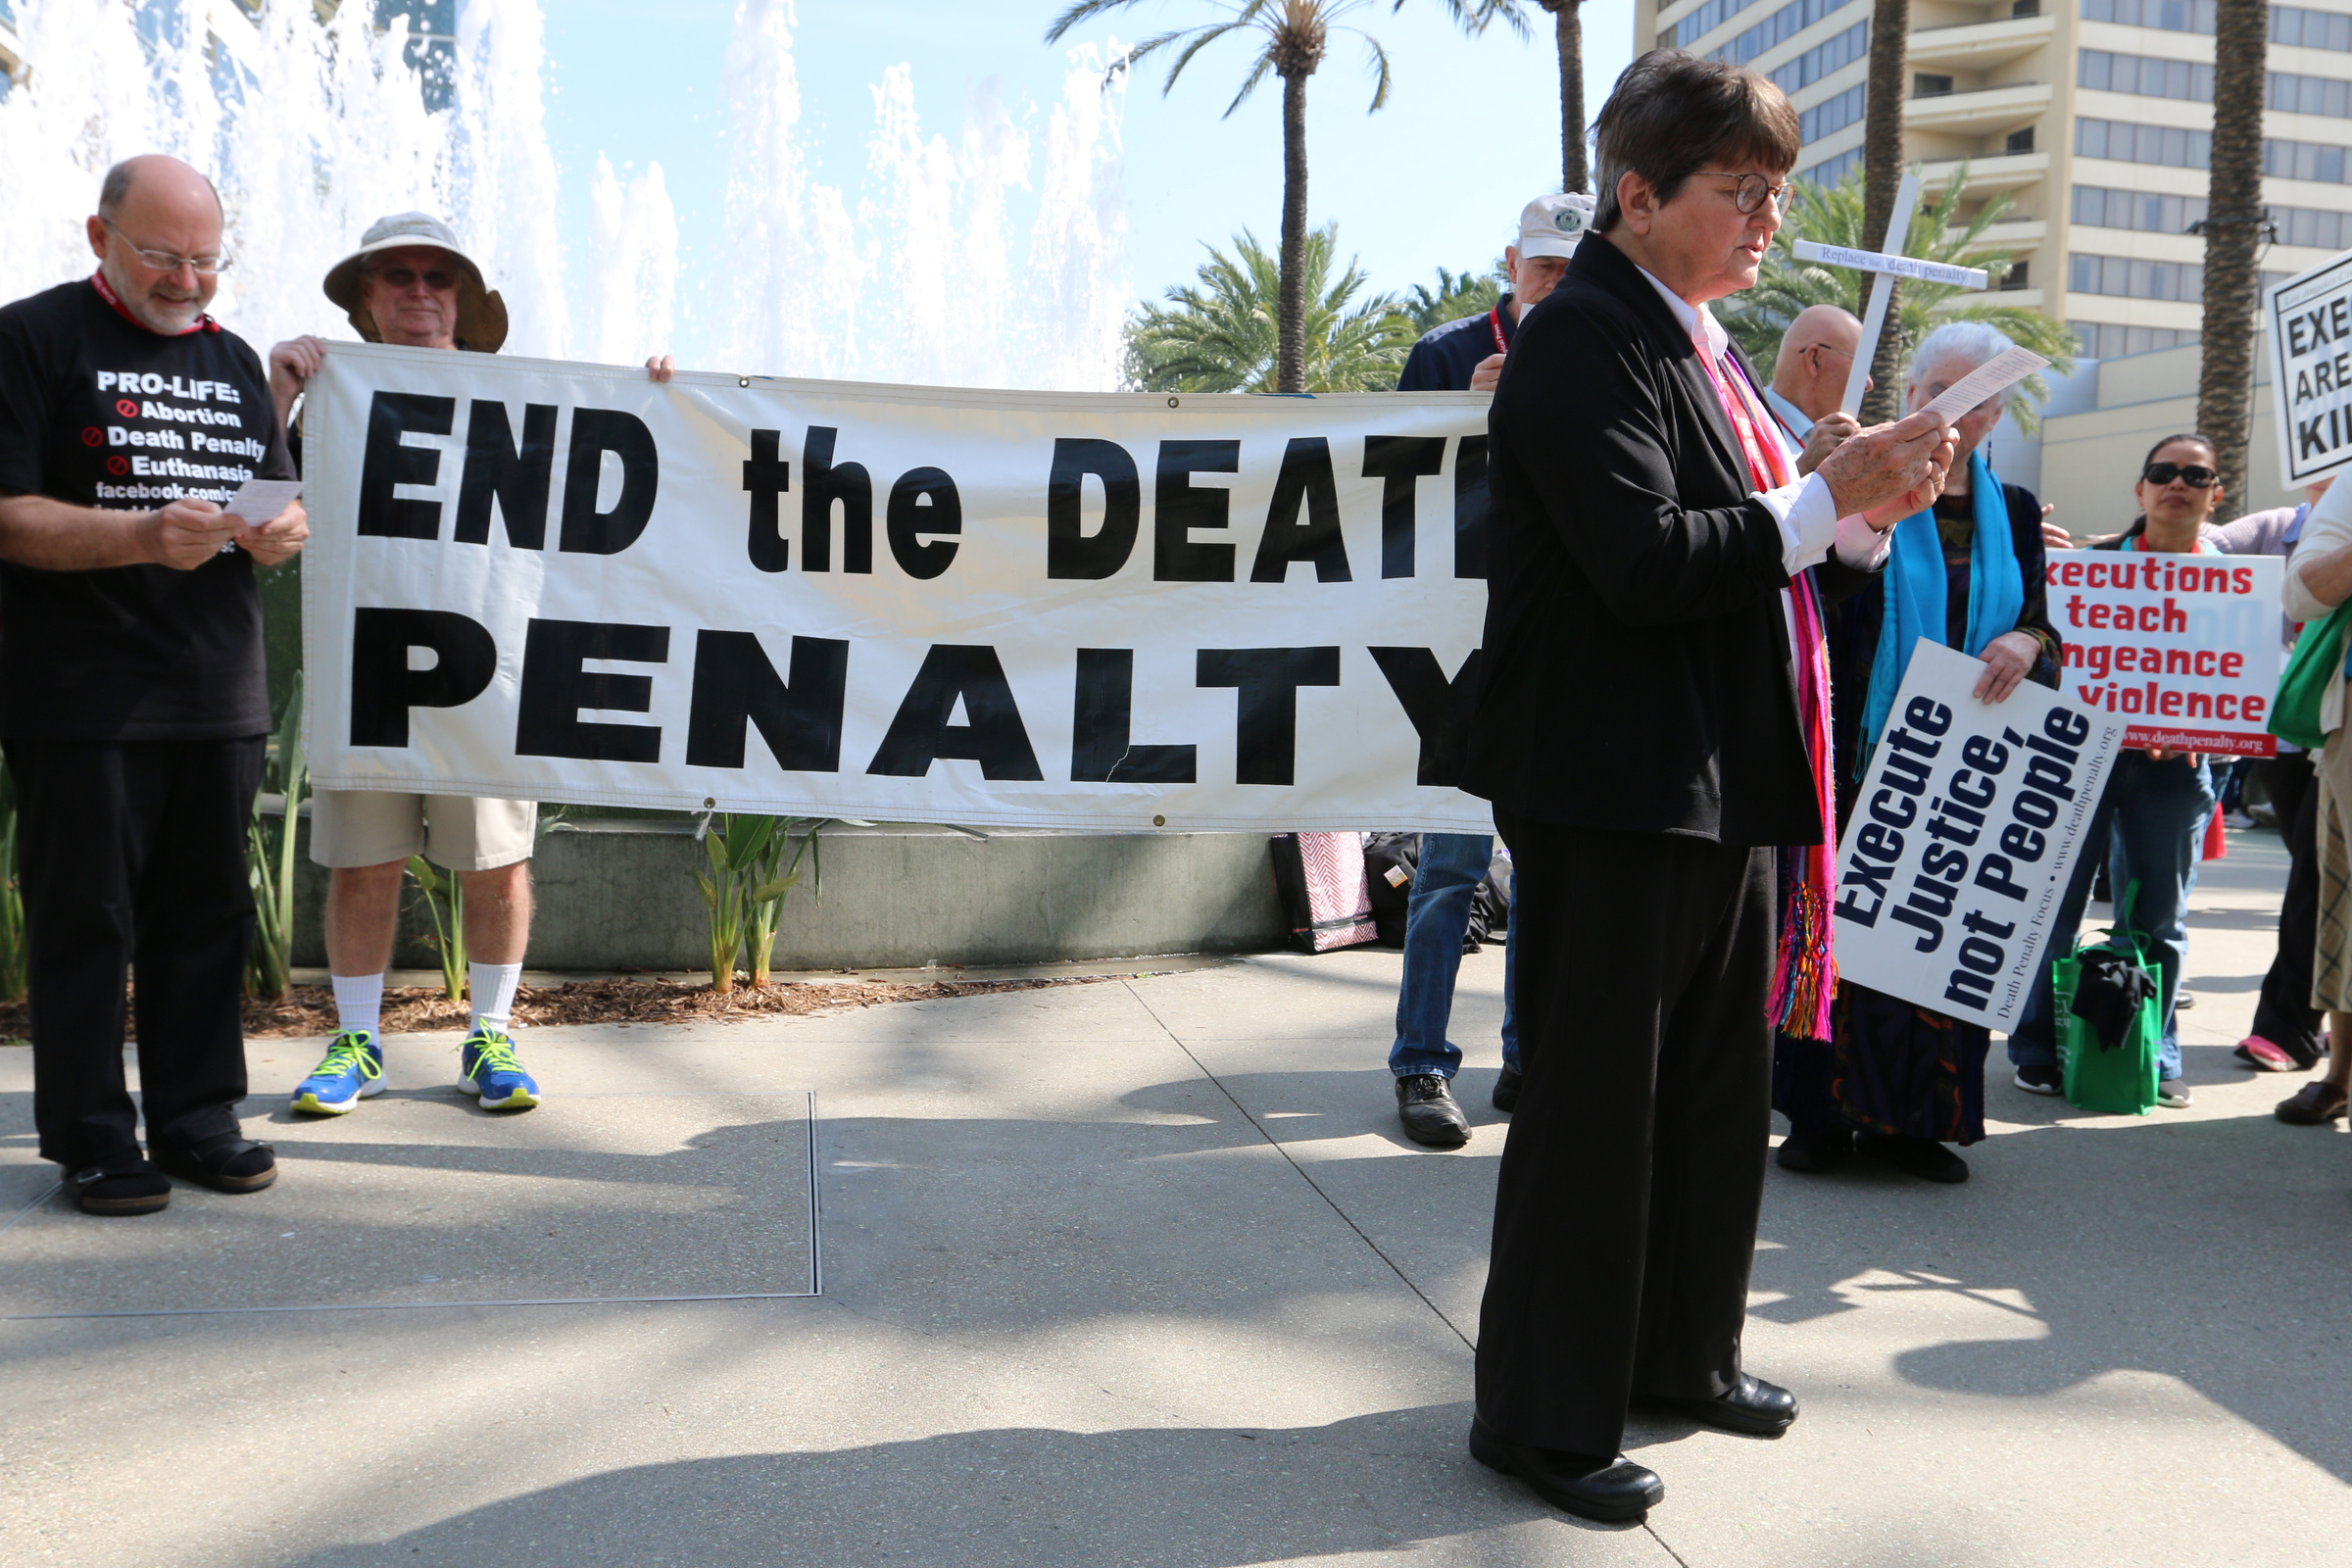 the death penalty in california The death penalty status in california is: active executions since 1976: 13 innocent people freed from death row death penalty focus email: information@deathpenaltyorg, phone: 415-243-0143 address: 5 third street suite 725, san francisco, ca 94103.